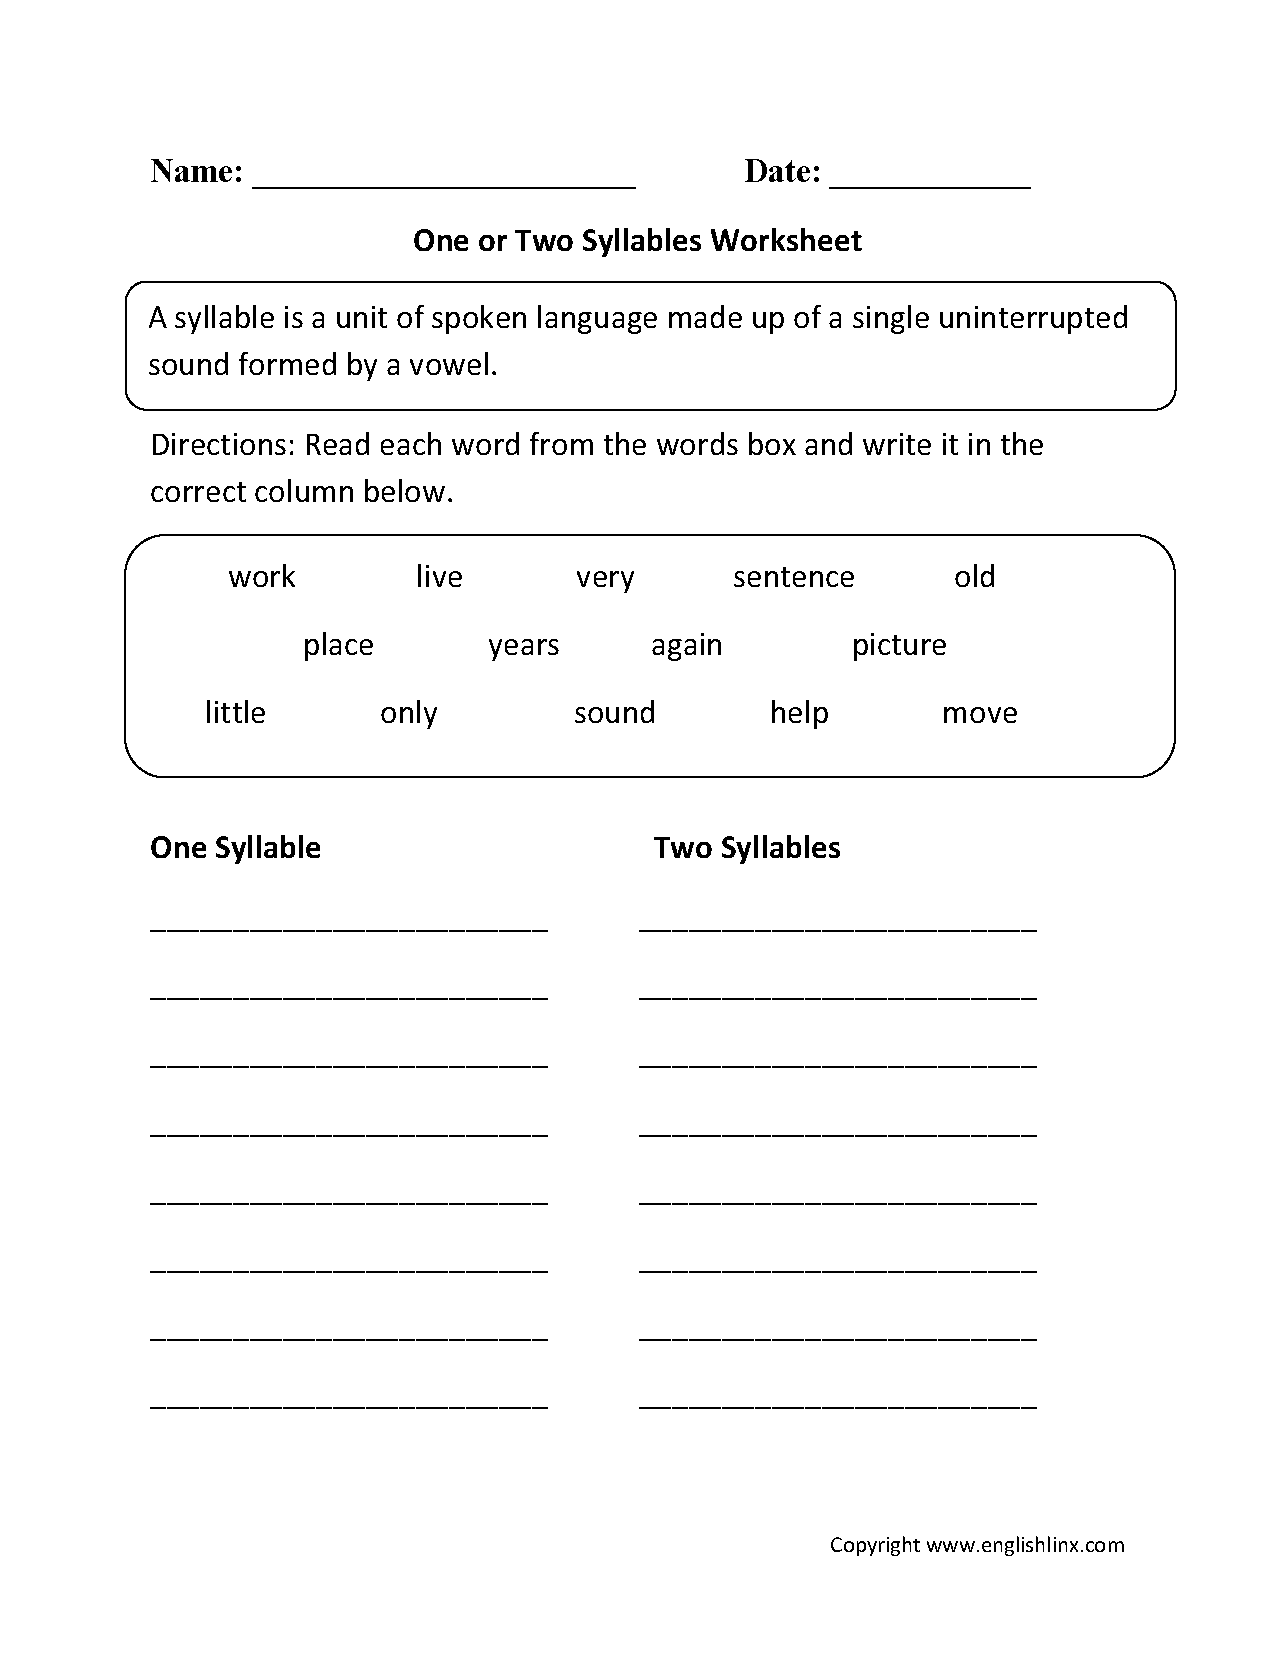 One Or Two Syllables Worksheet